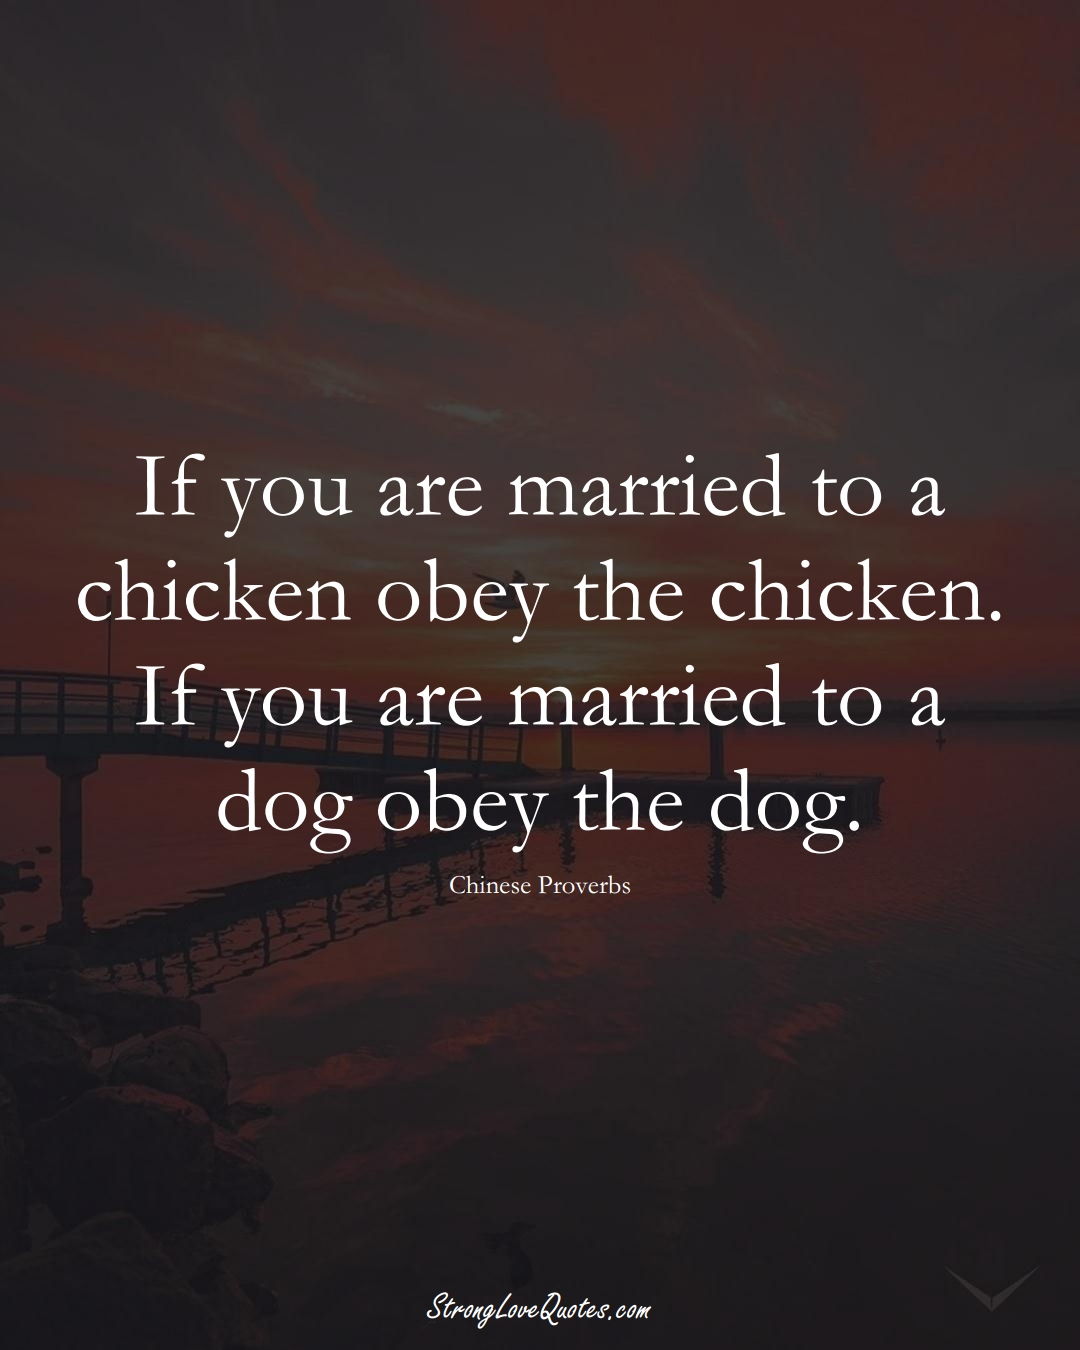 If you are married to a chicken obey the chicken. If you are married to a dog obey the dog. (Chinese Sayings);  #AsianSayings